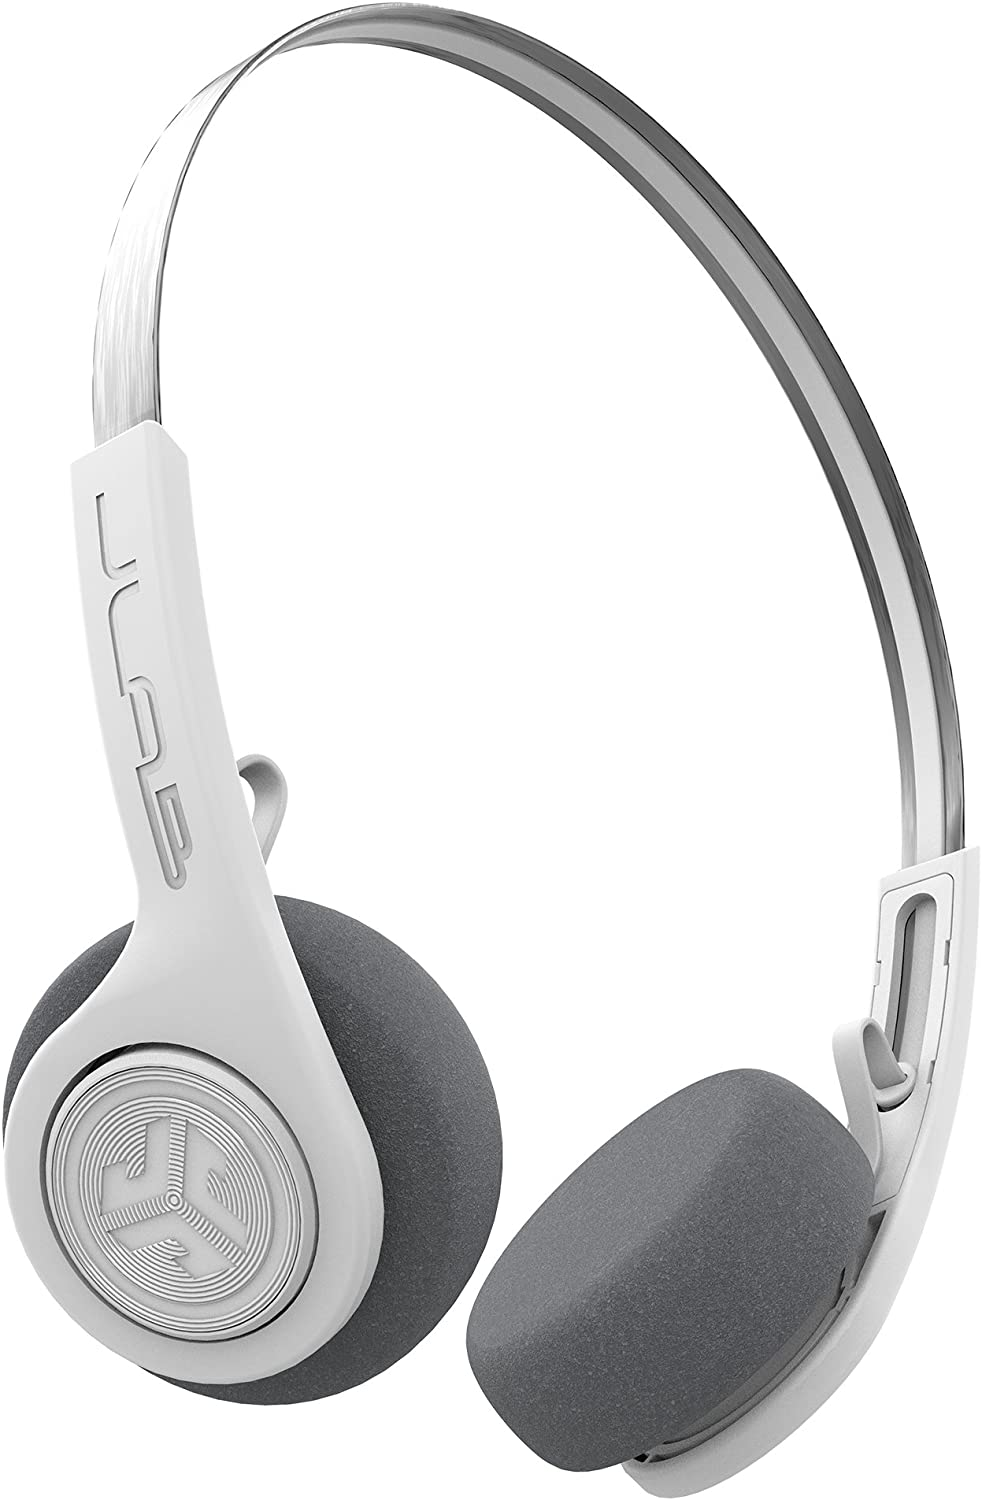 JLab Audio Rewind Wireless Retro Headphones | Bluetooth 4.2 | 12 Hours Playtime | Custom EQ3 Sound | Music Controls | Noise Isolation | with Microphone | Throwback 80s 90s Design | White